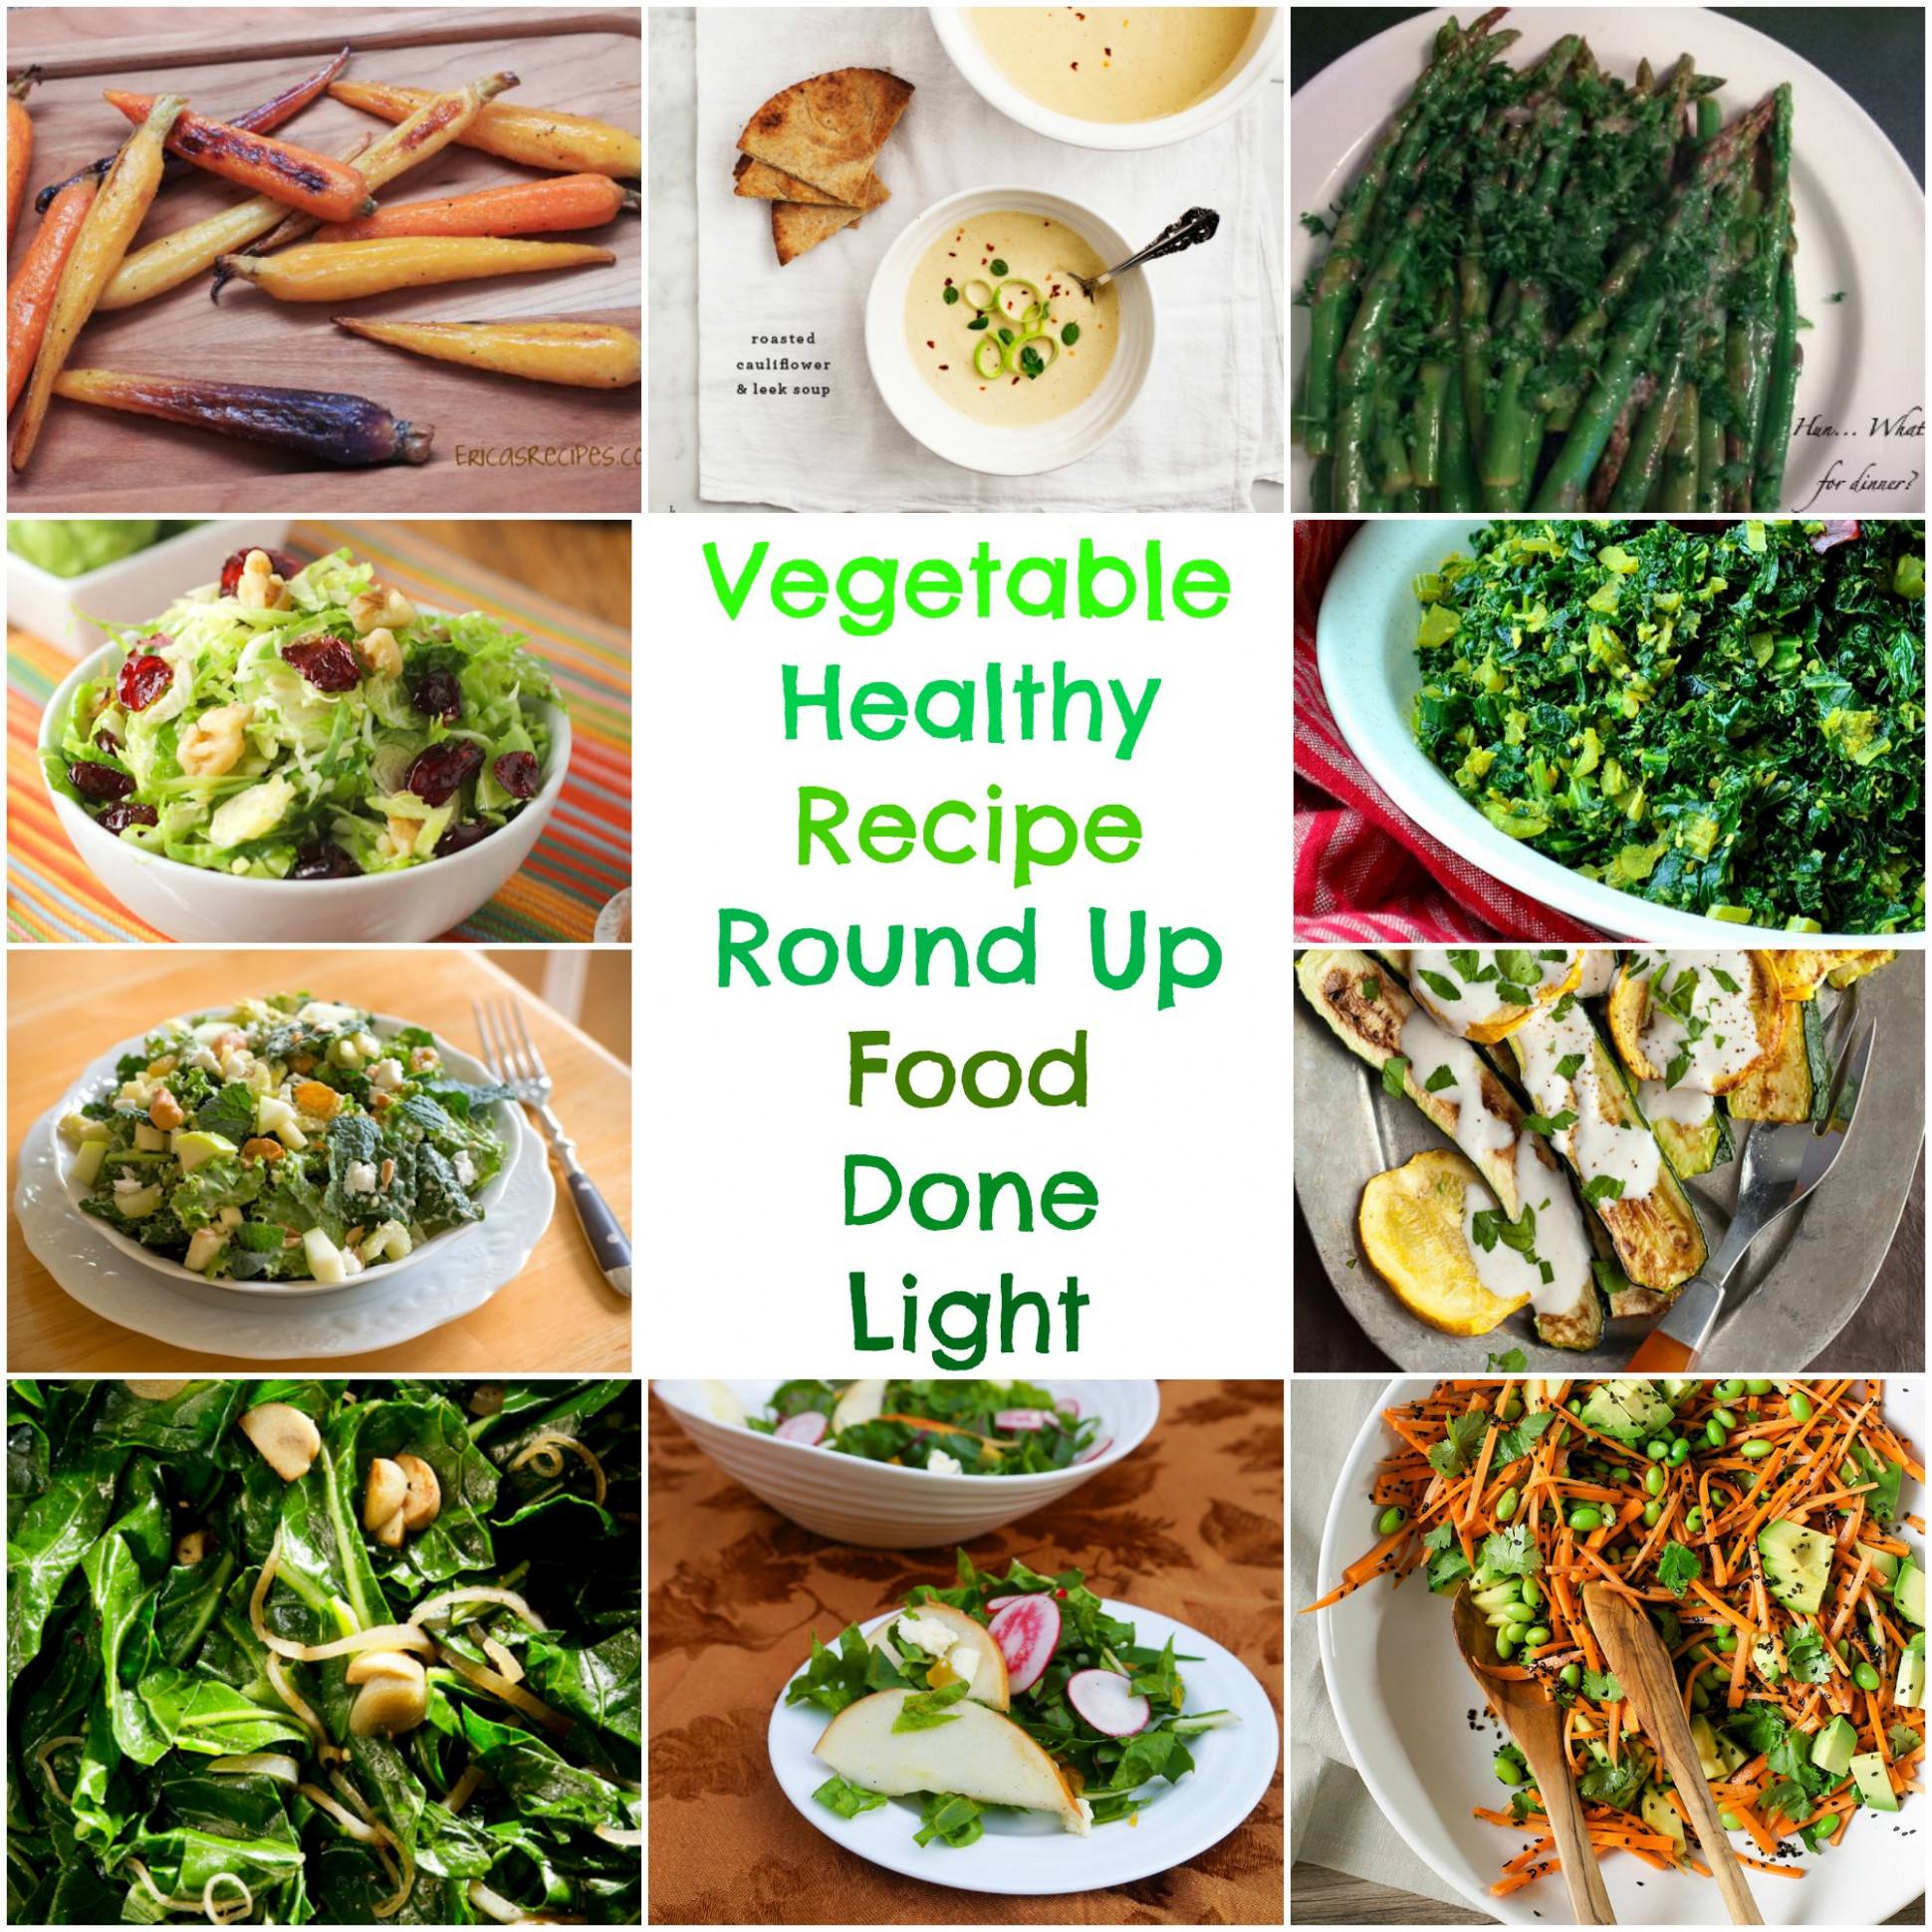 Vegetable Healthy Recipe Round Up - Food Done Light